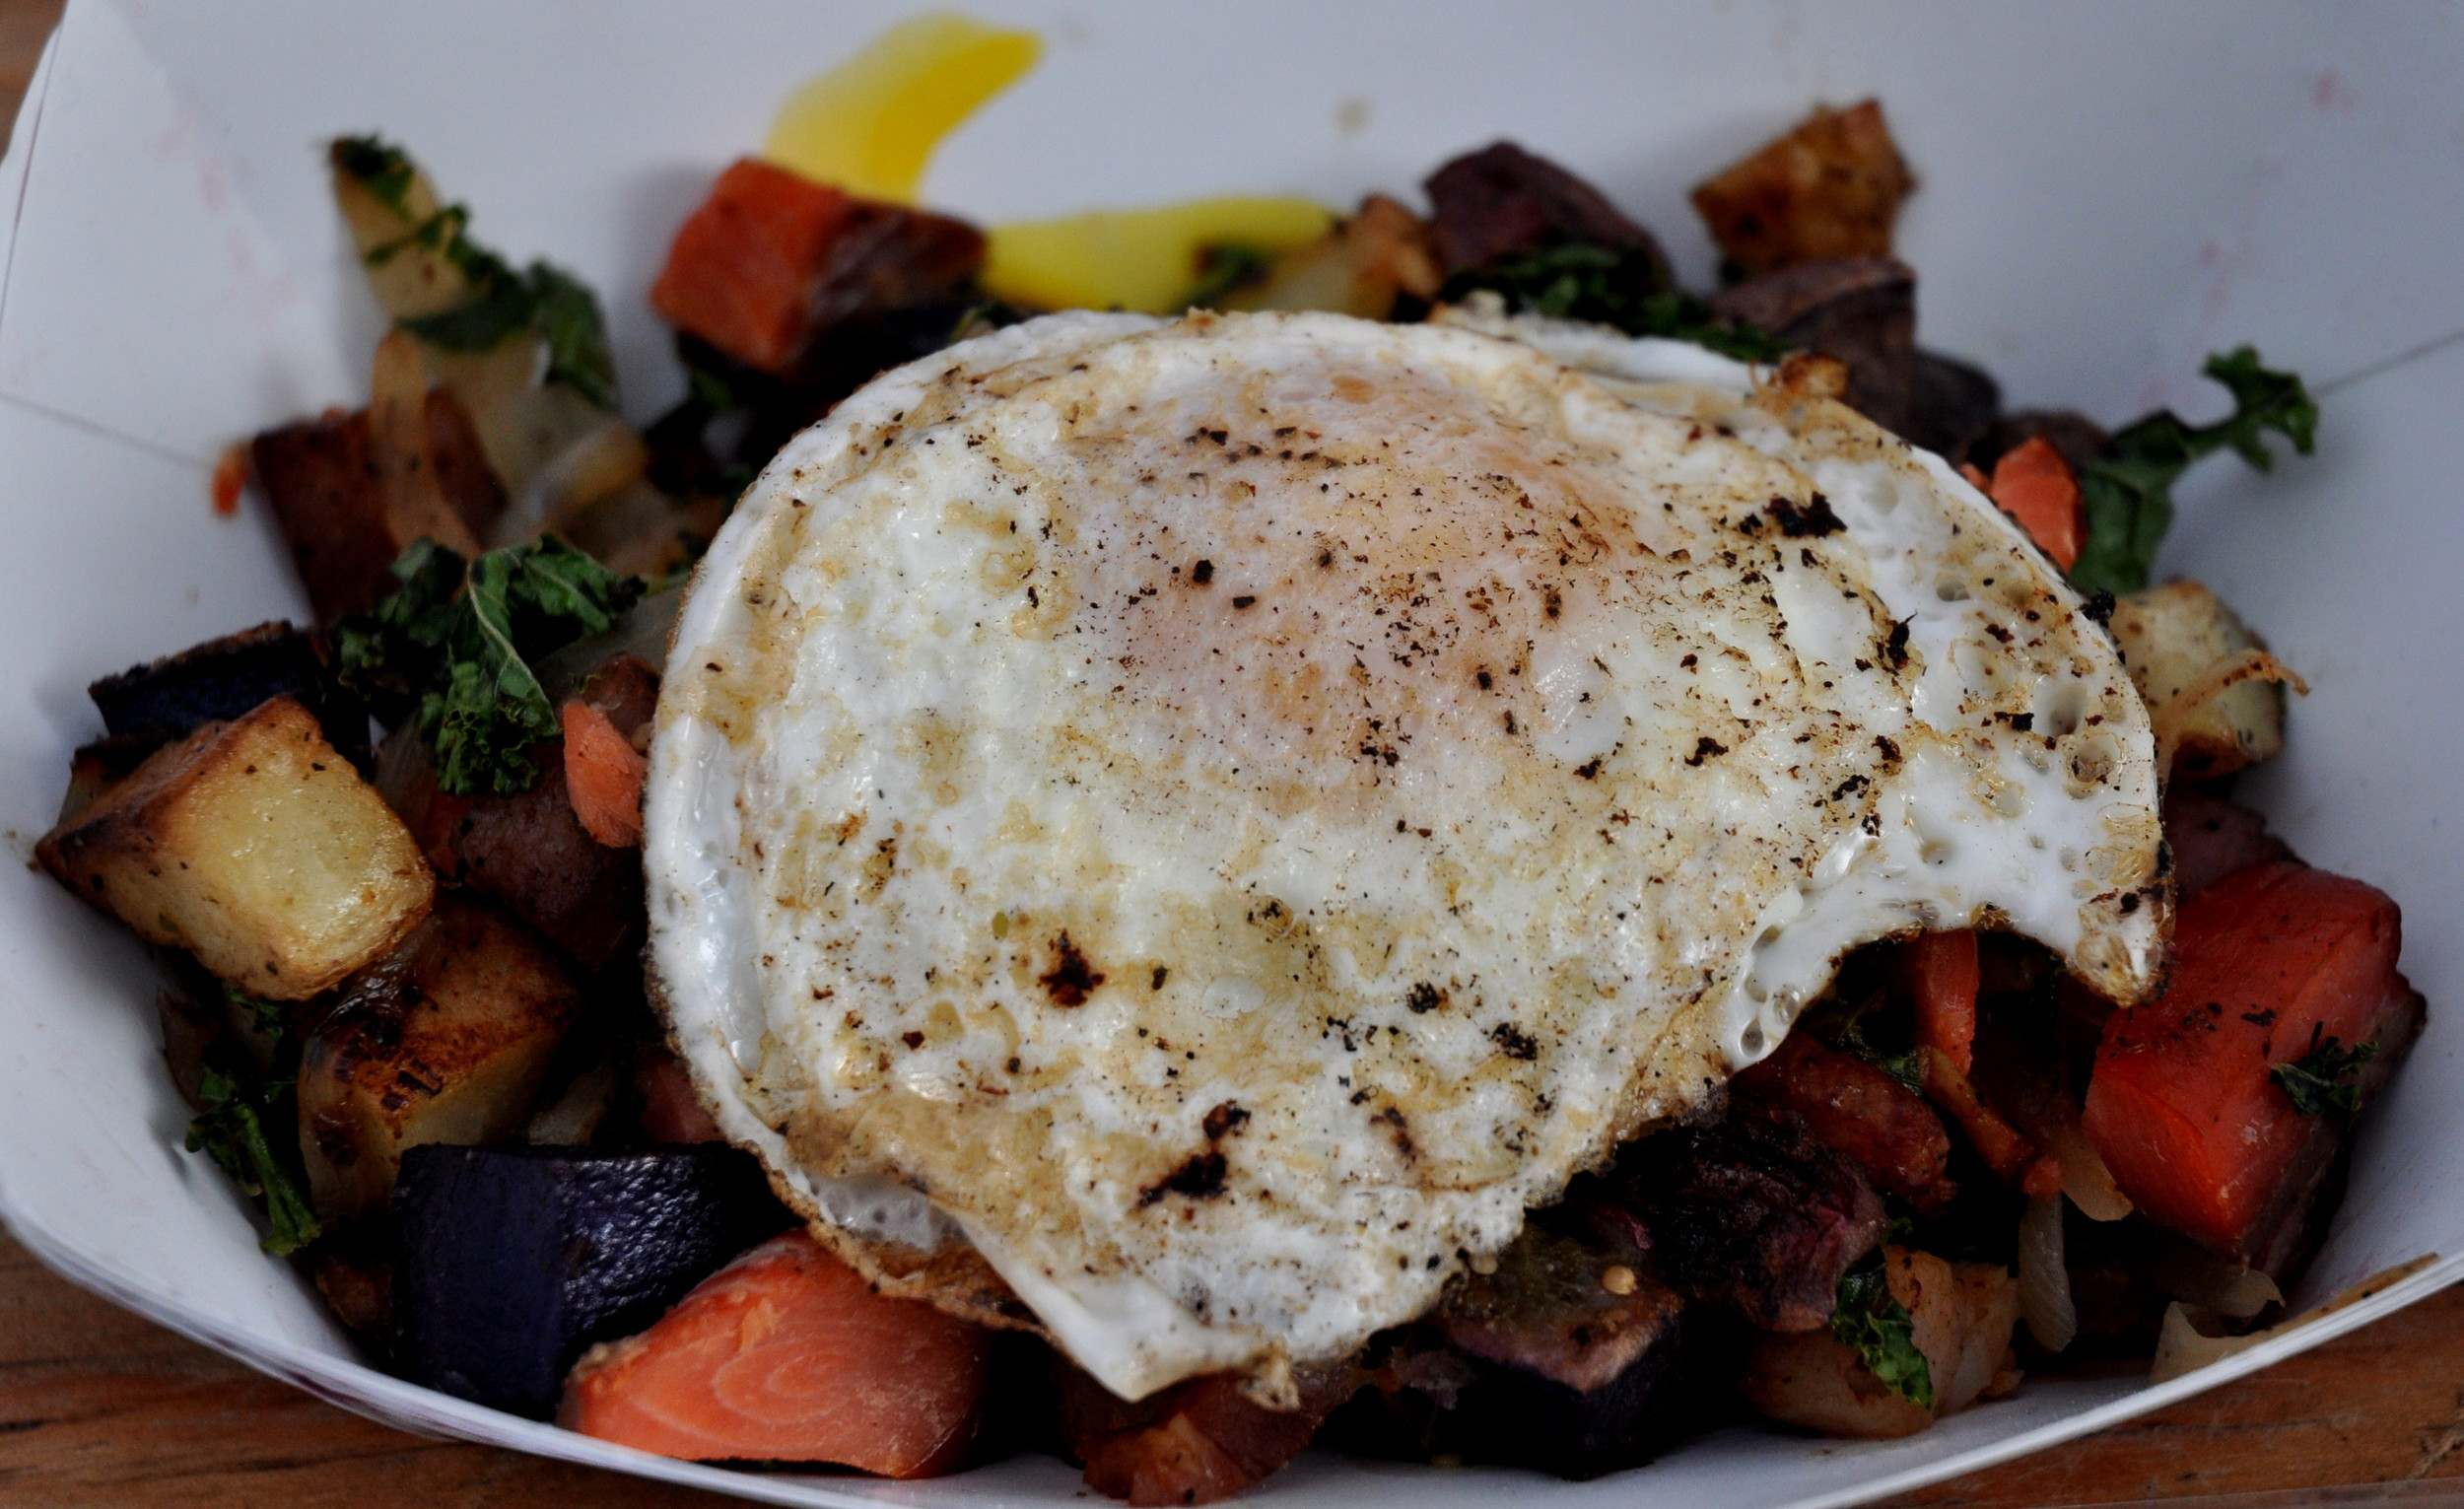 The Loki Special breakfast hash from Loki Fish at Ballard Farmers Market. Copyright Zachary D. Lyons.